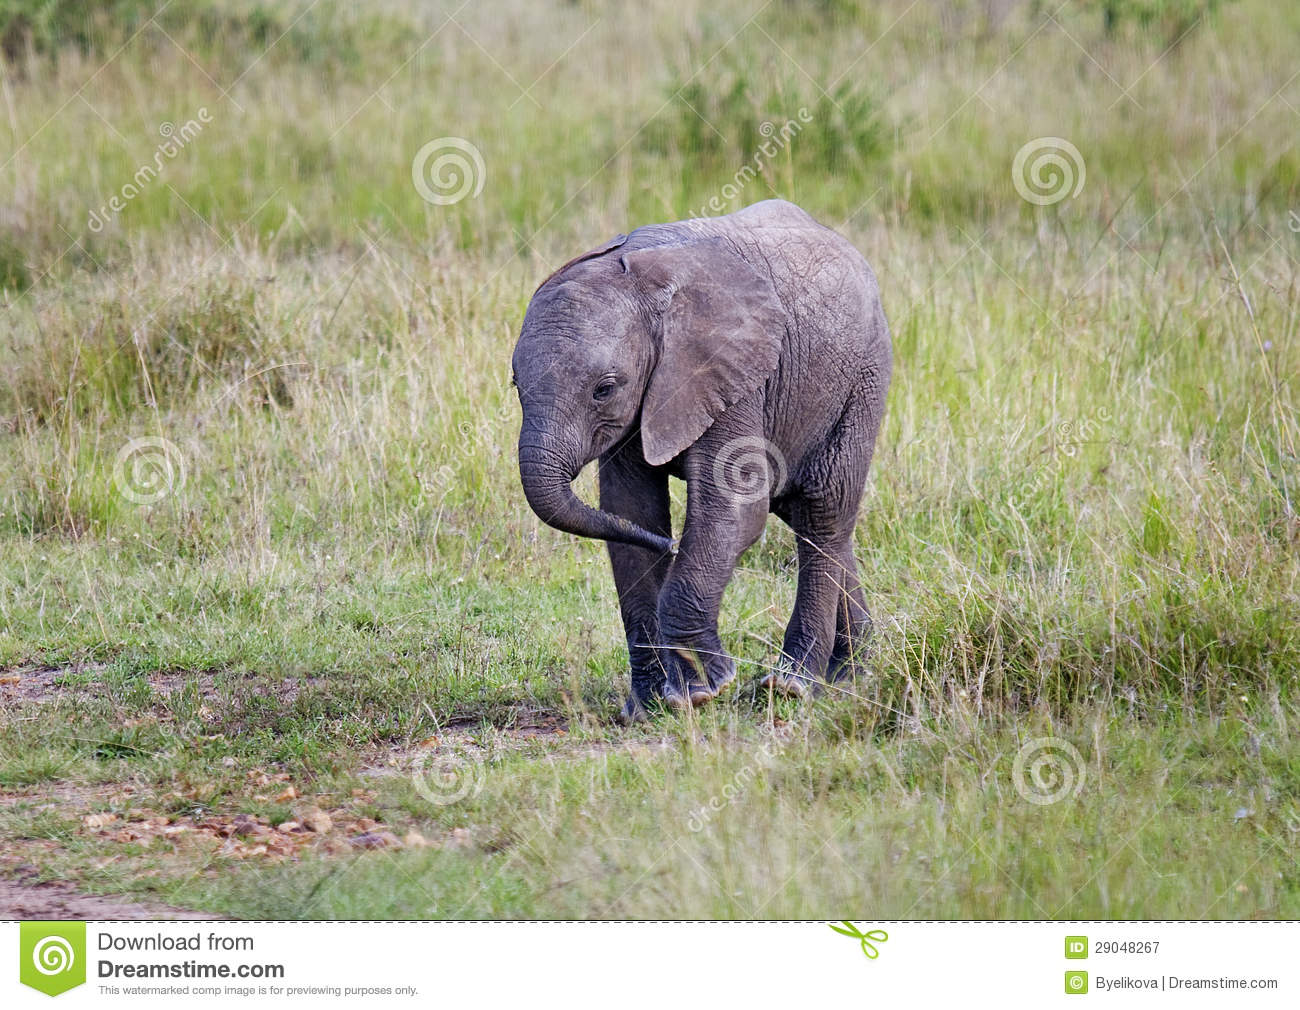 Big Cute Baby Wallpaper African Elephant Baby Stock Image Image Of Conflict